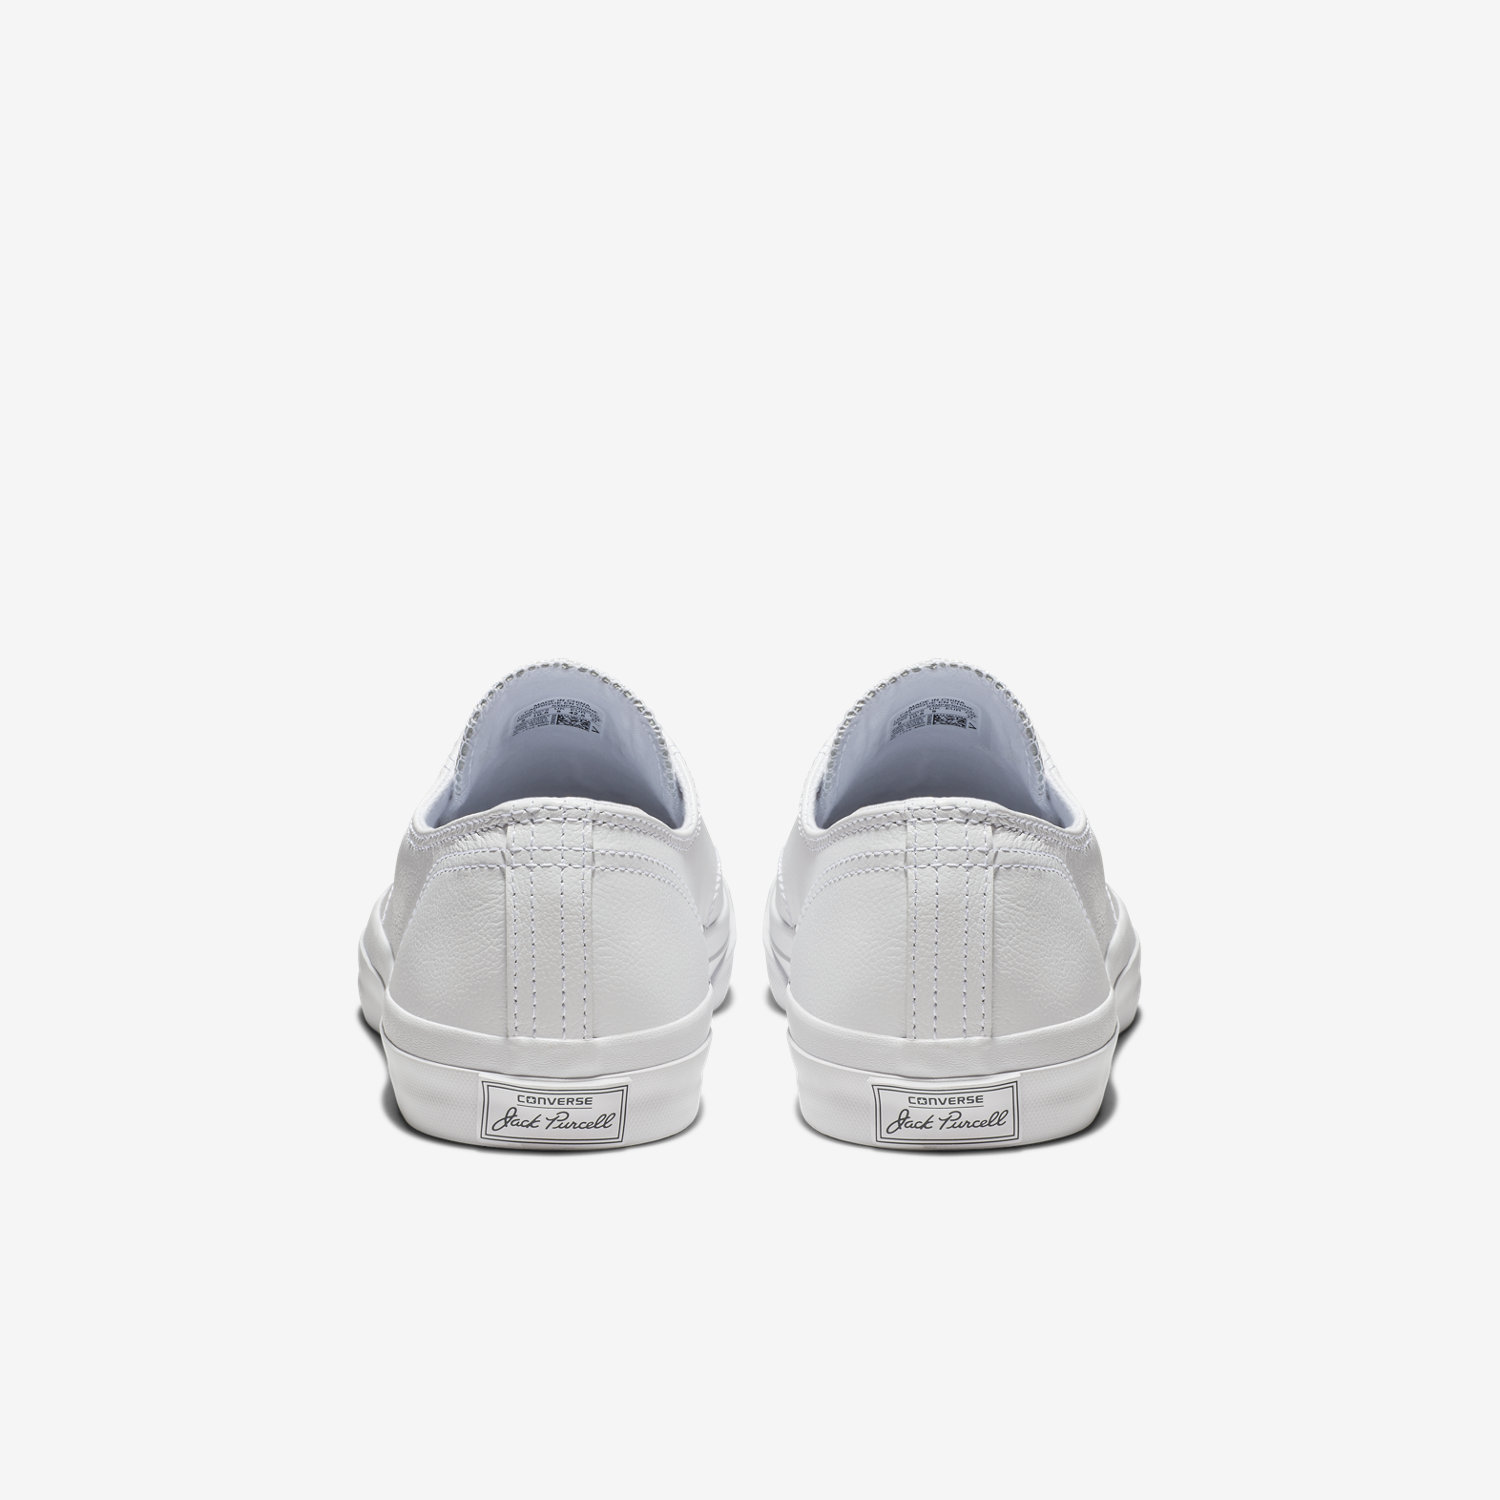 Converse JACK PURCELL discorso